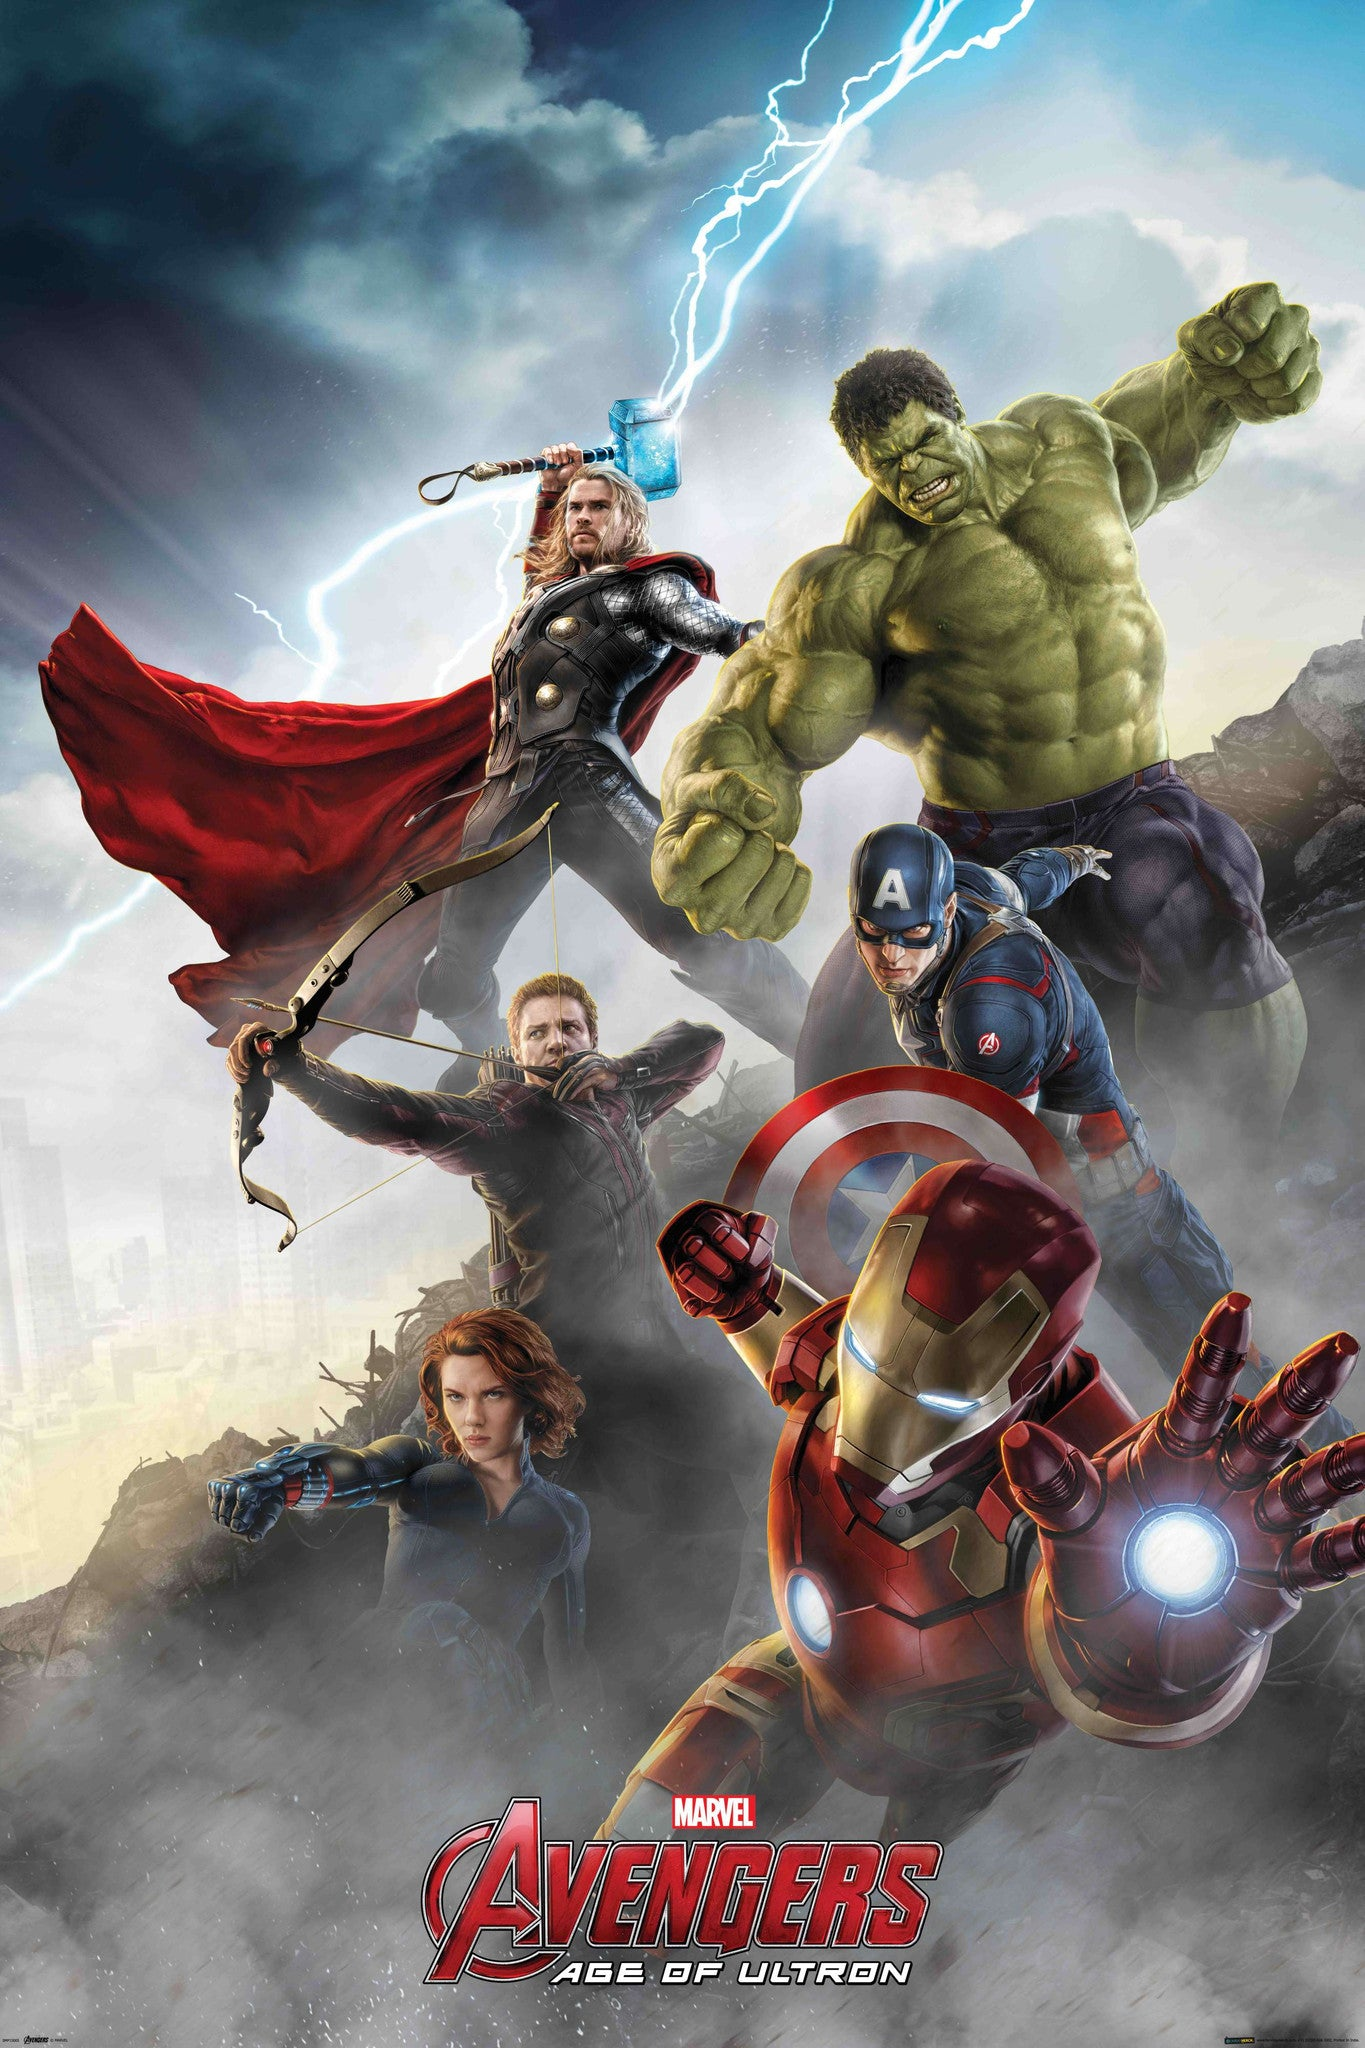 The Avengers (Cast - Collage) 2-Superherotoystore.com- www.superherotoystore.com-Posters